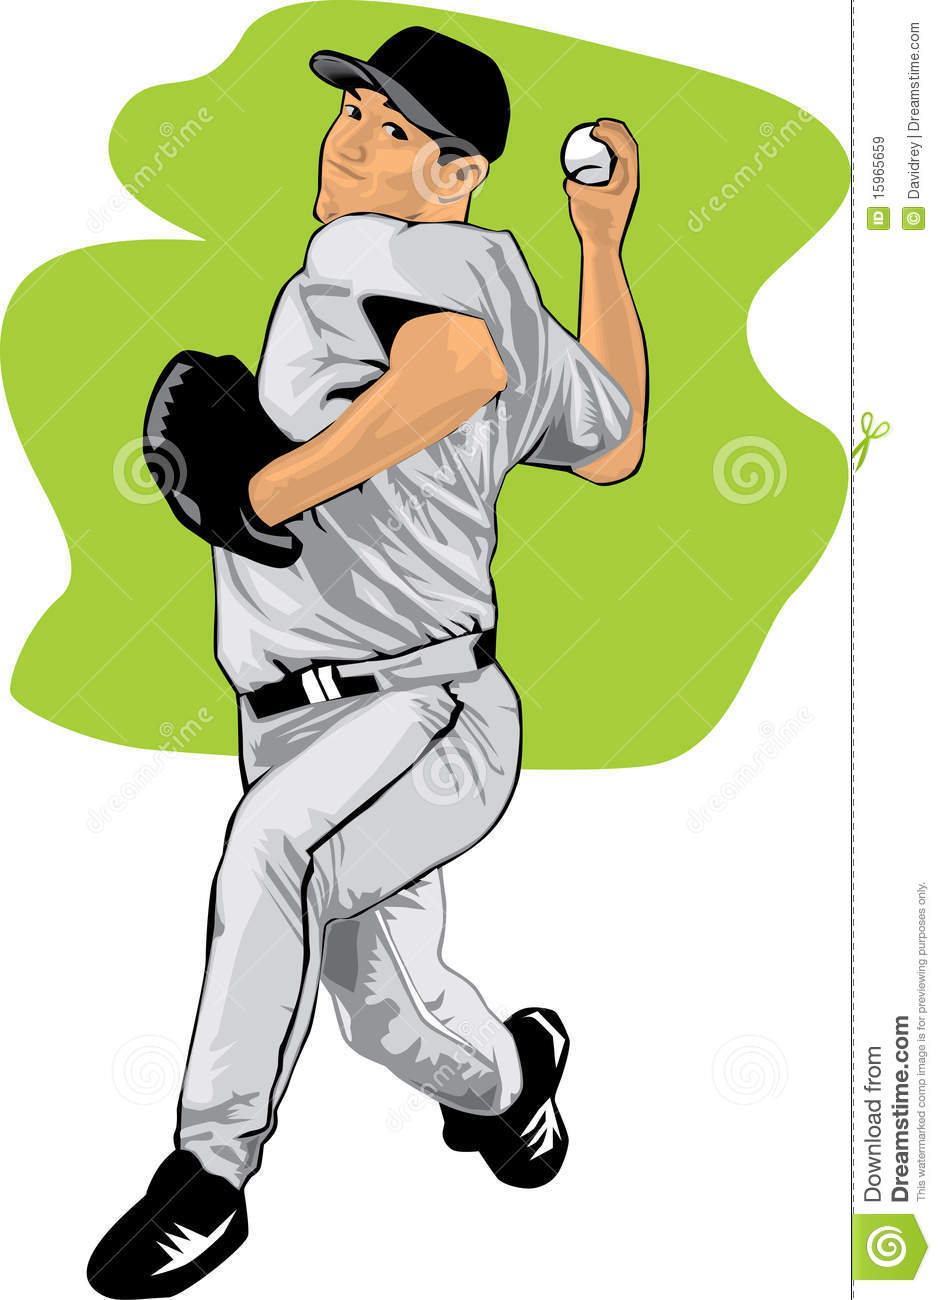 Colored Illustration Of A Baseball Pitcher Royalty Free ...